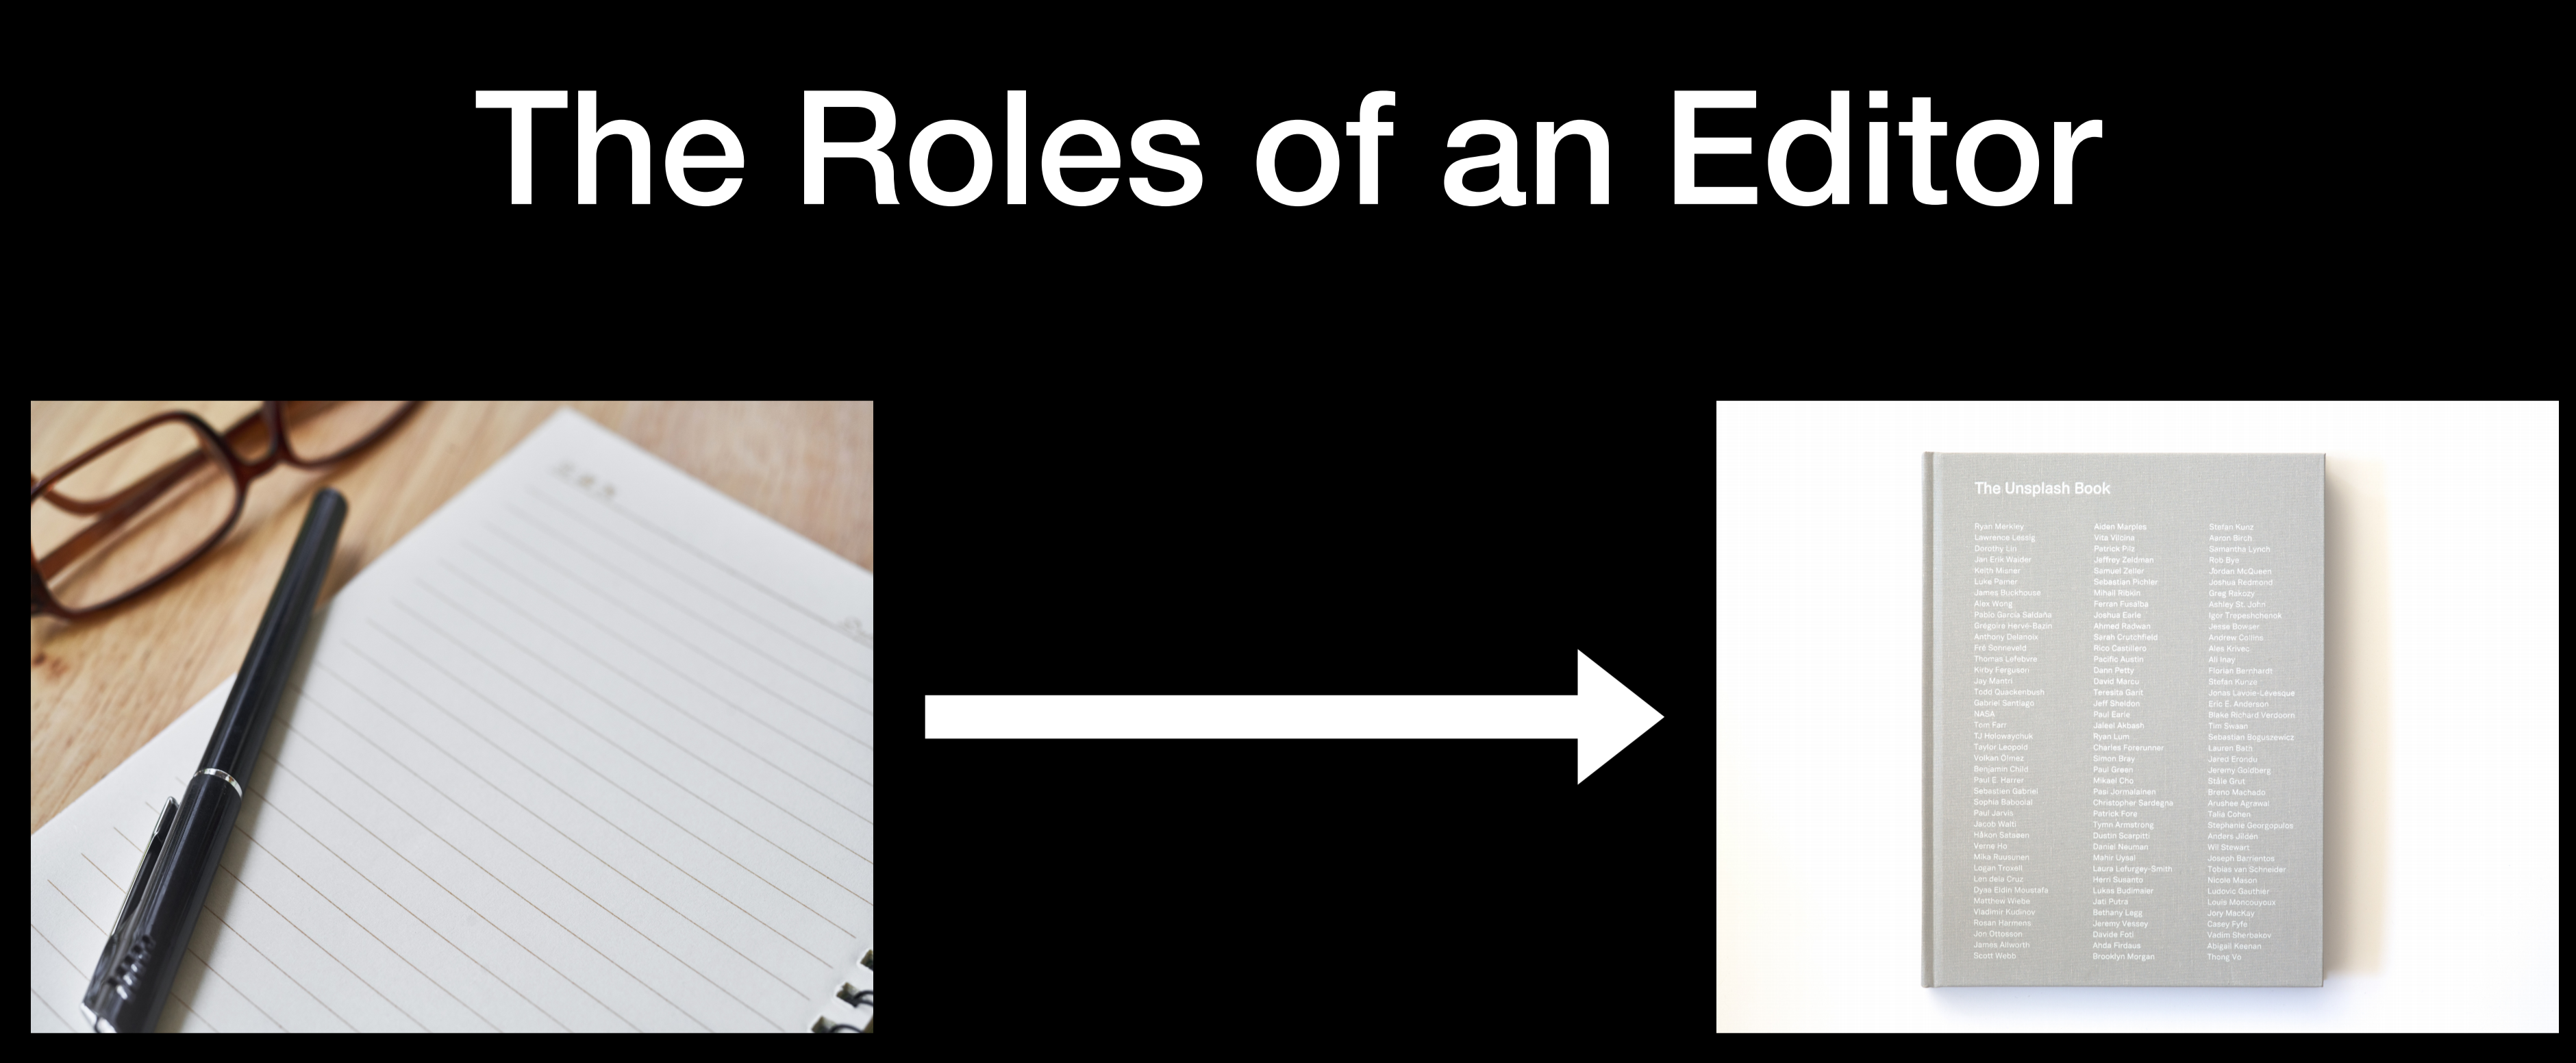 The roles of an editor